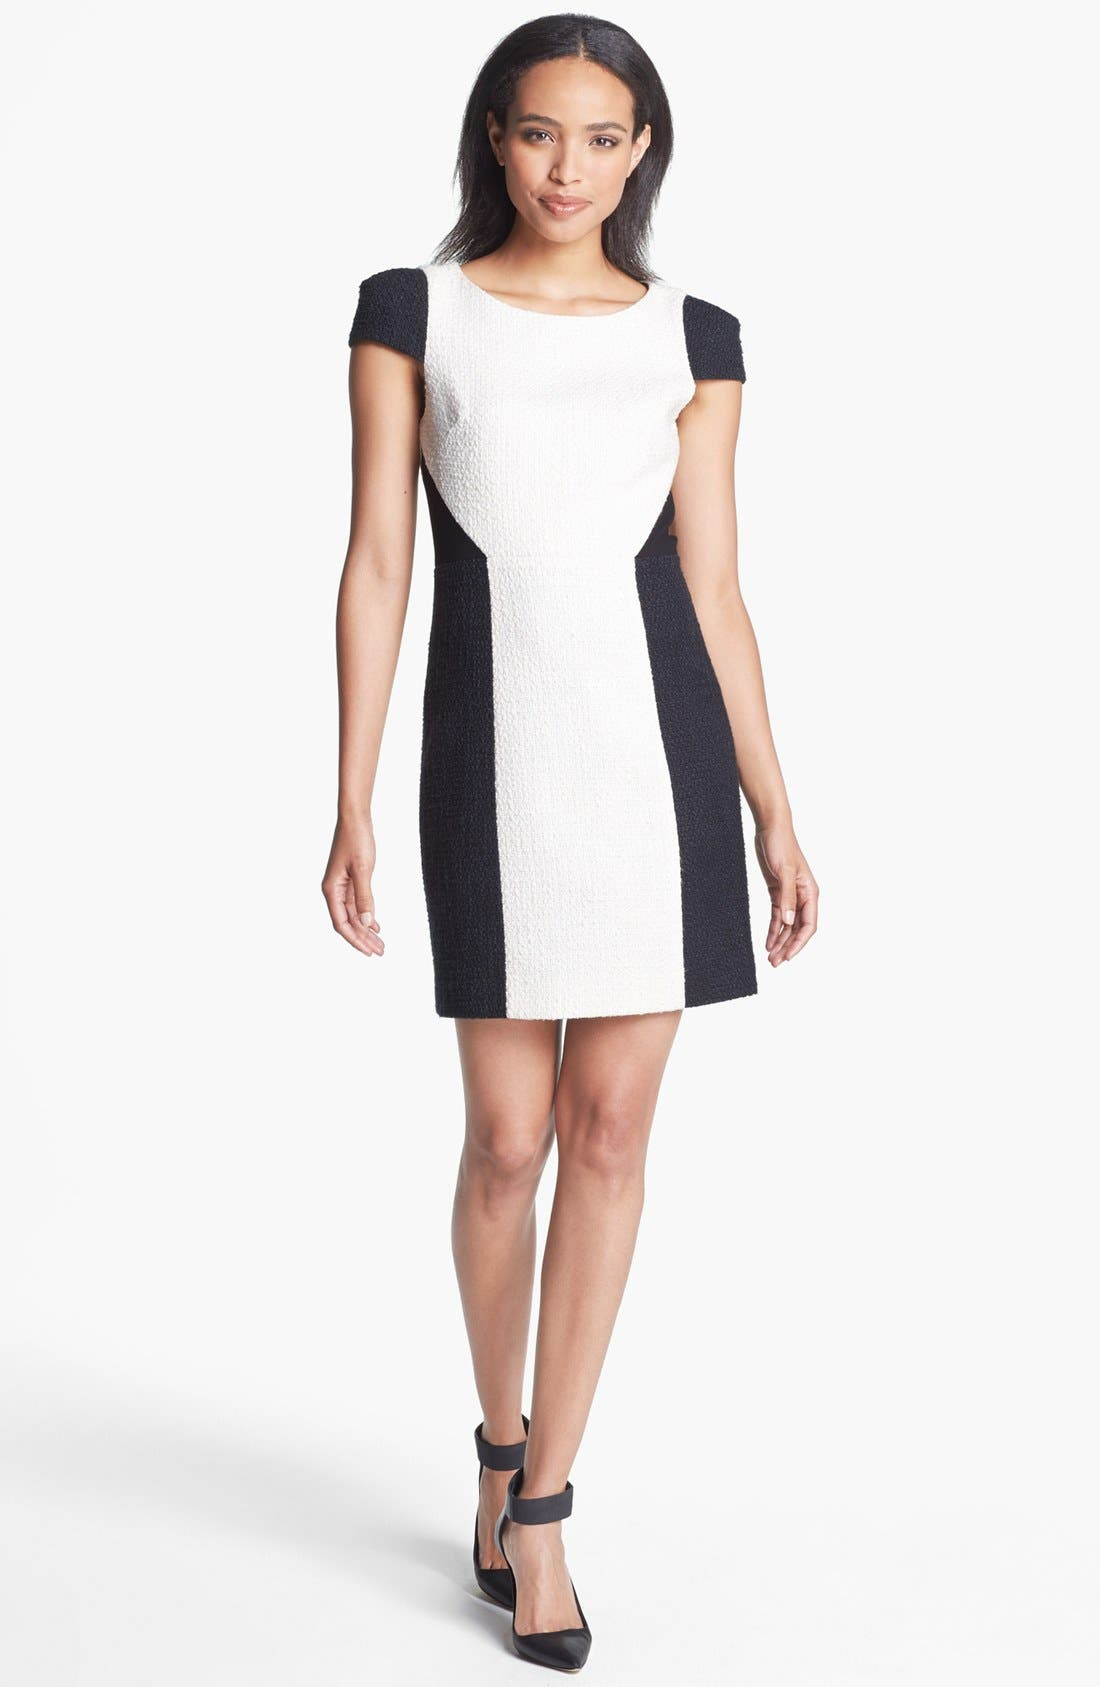 Main Image - 4.collective Colorblock Tweed Sheath Dress